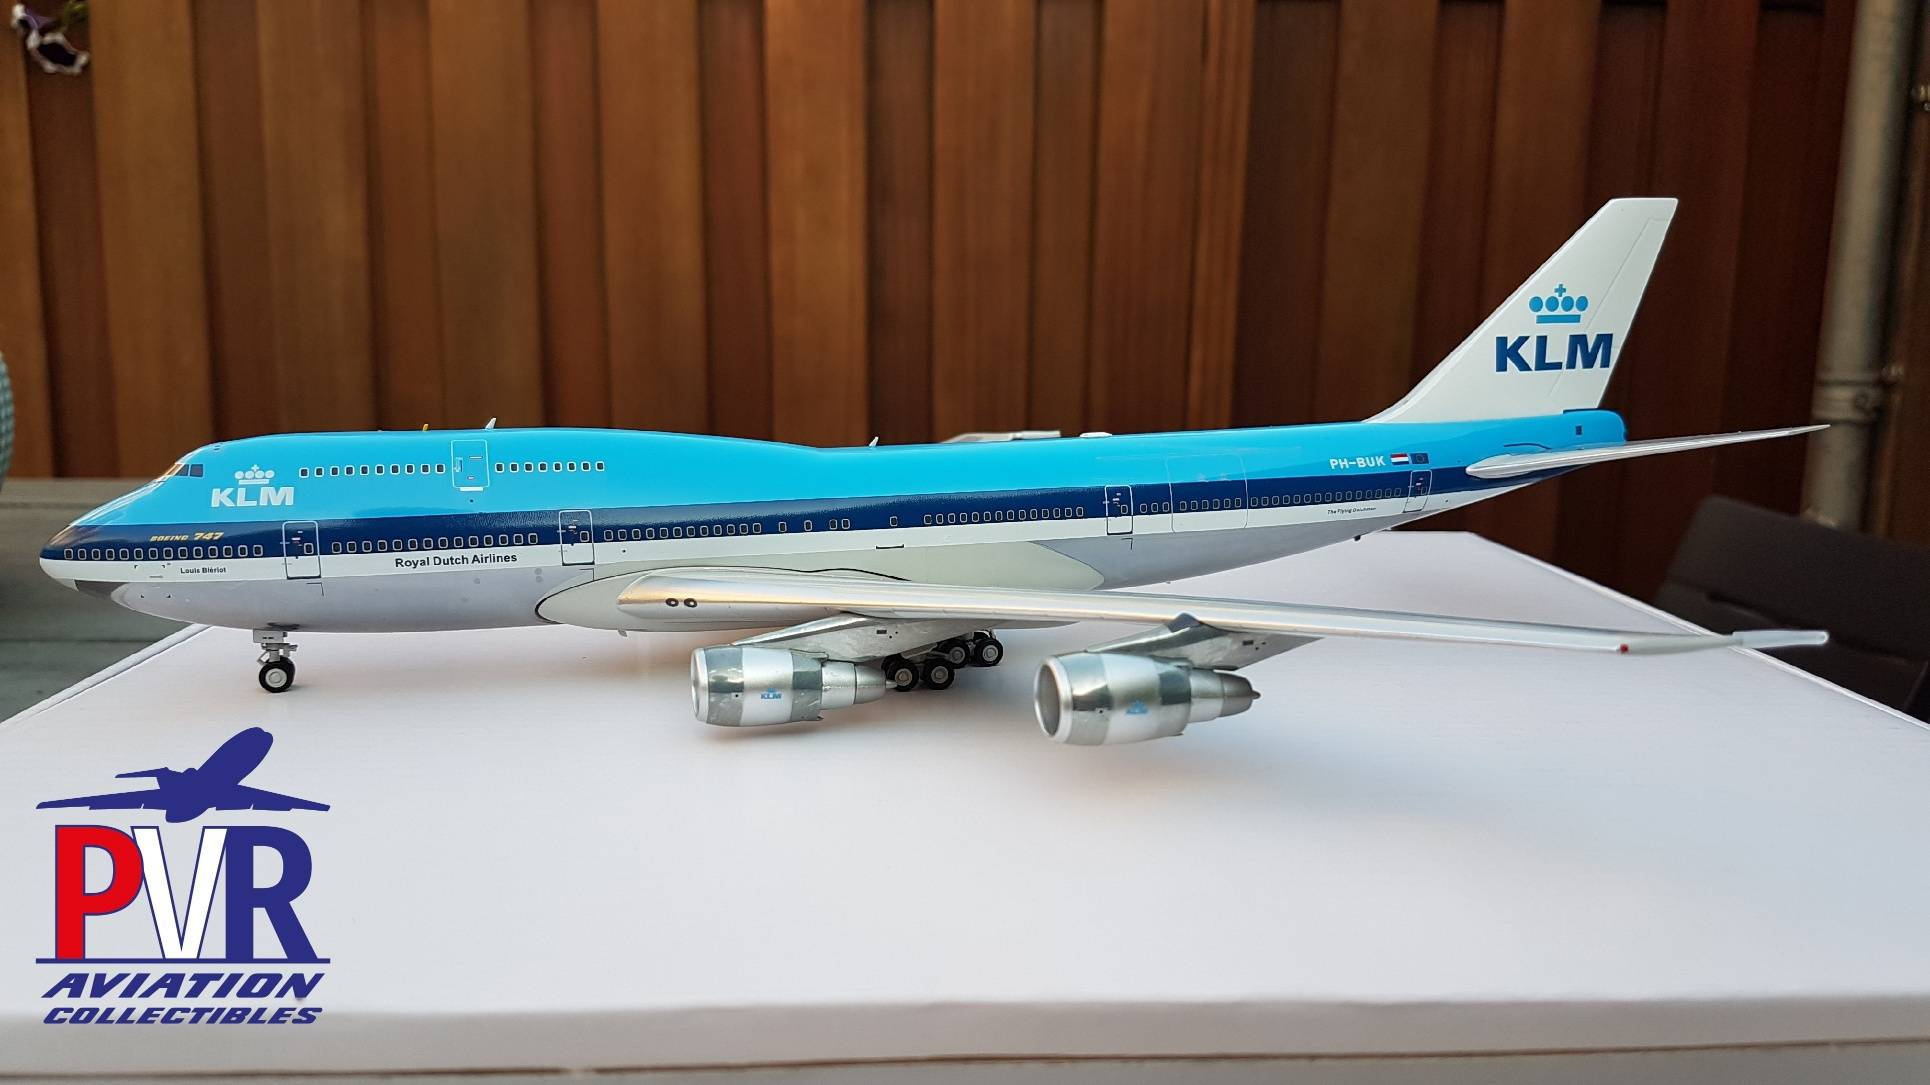 INFLIGHT200 BOEING 747-206BM(SUD) KLM POLISHED IF742SUD0118P €135